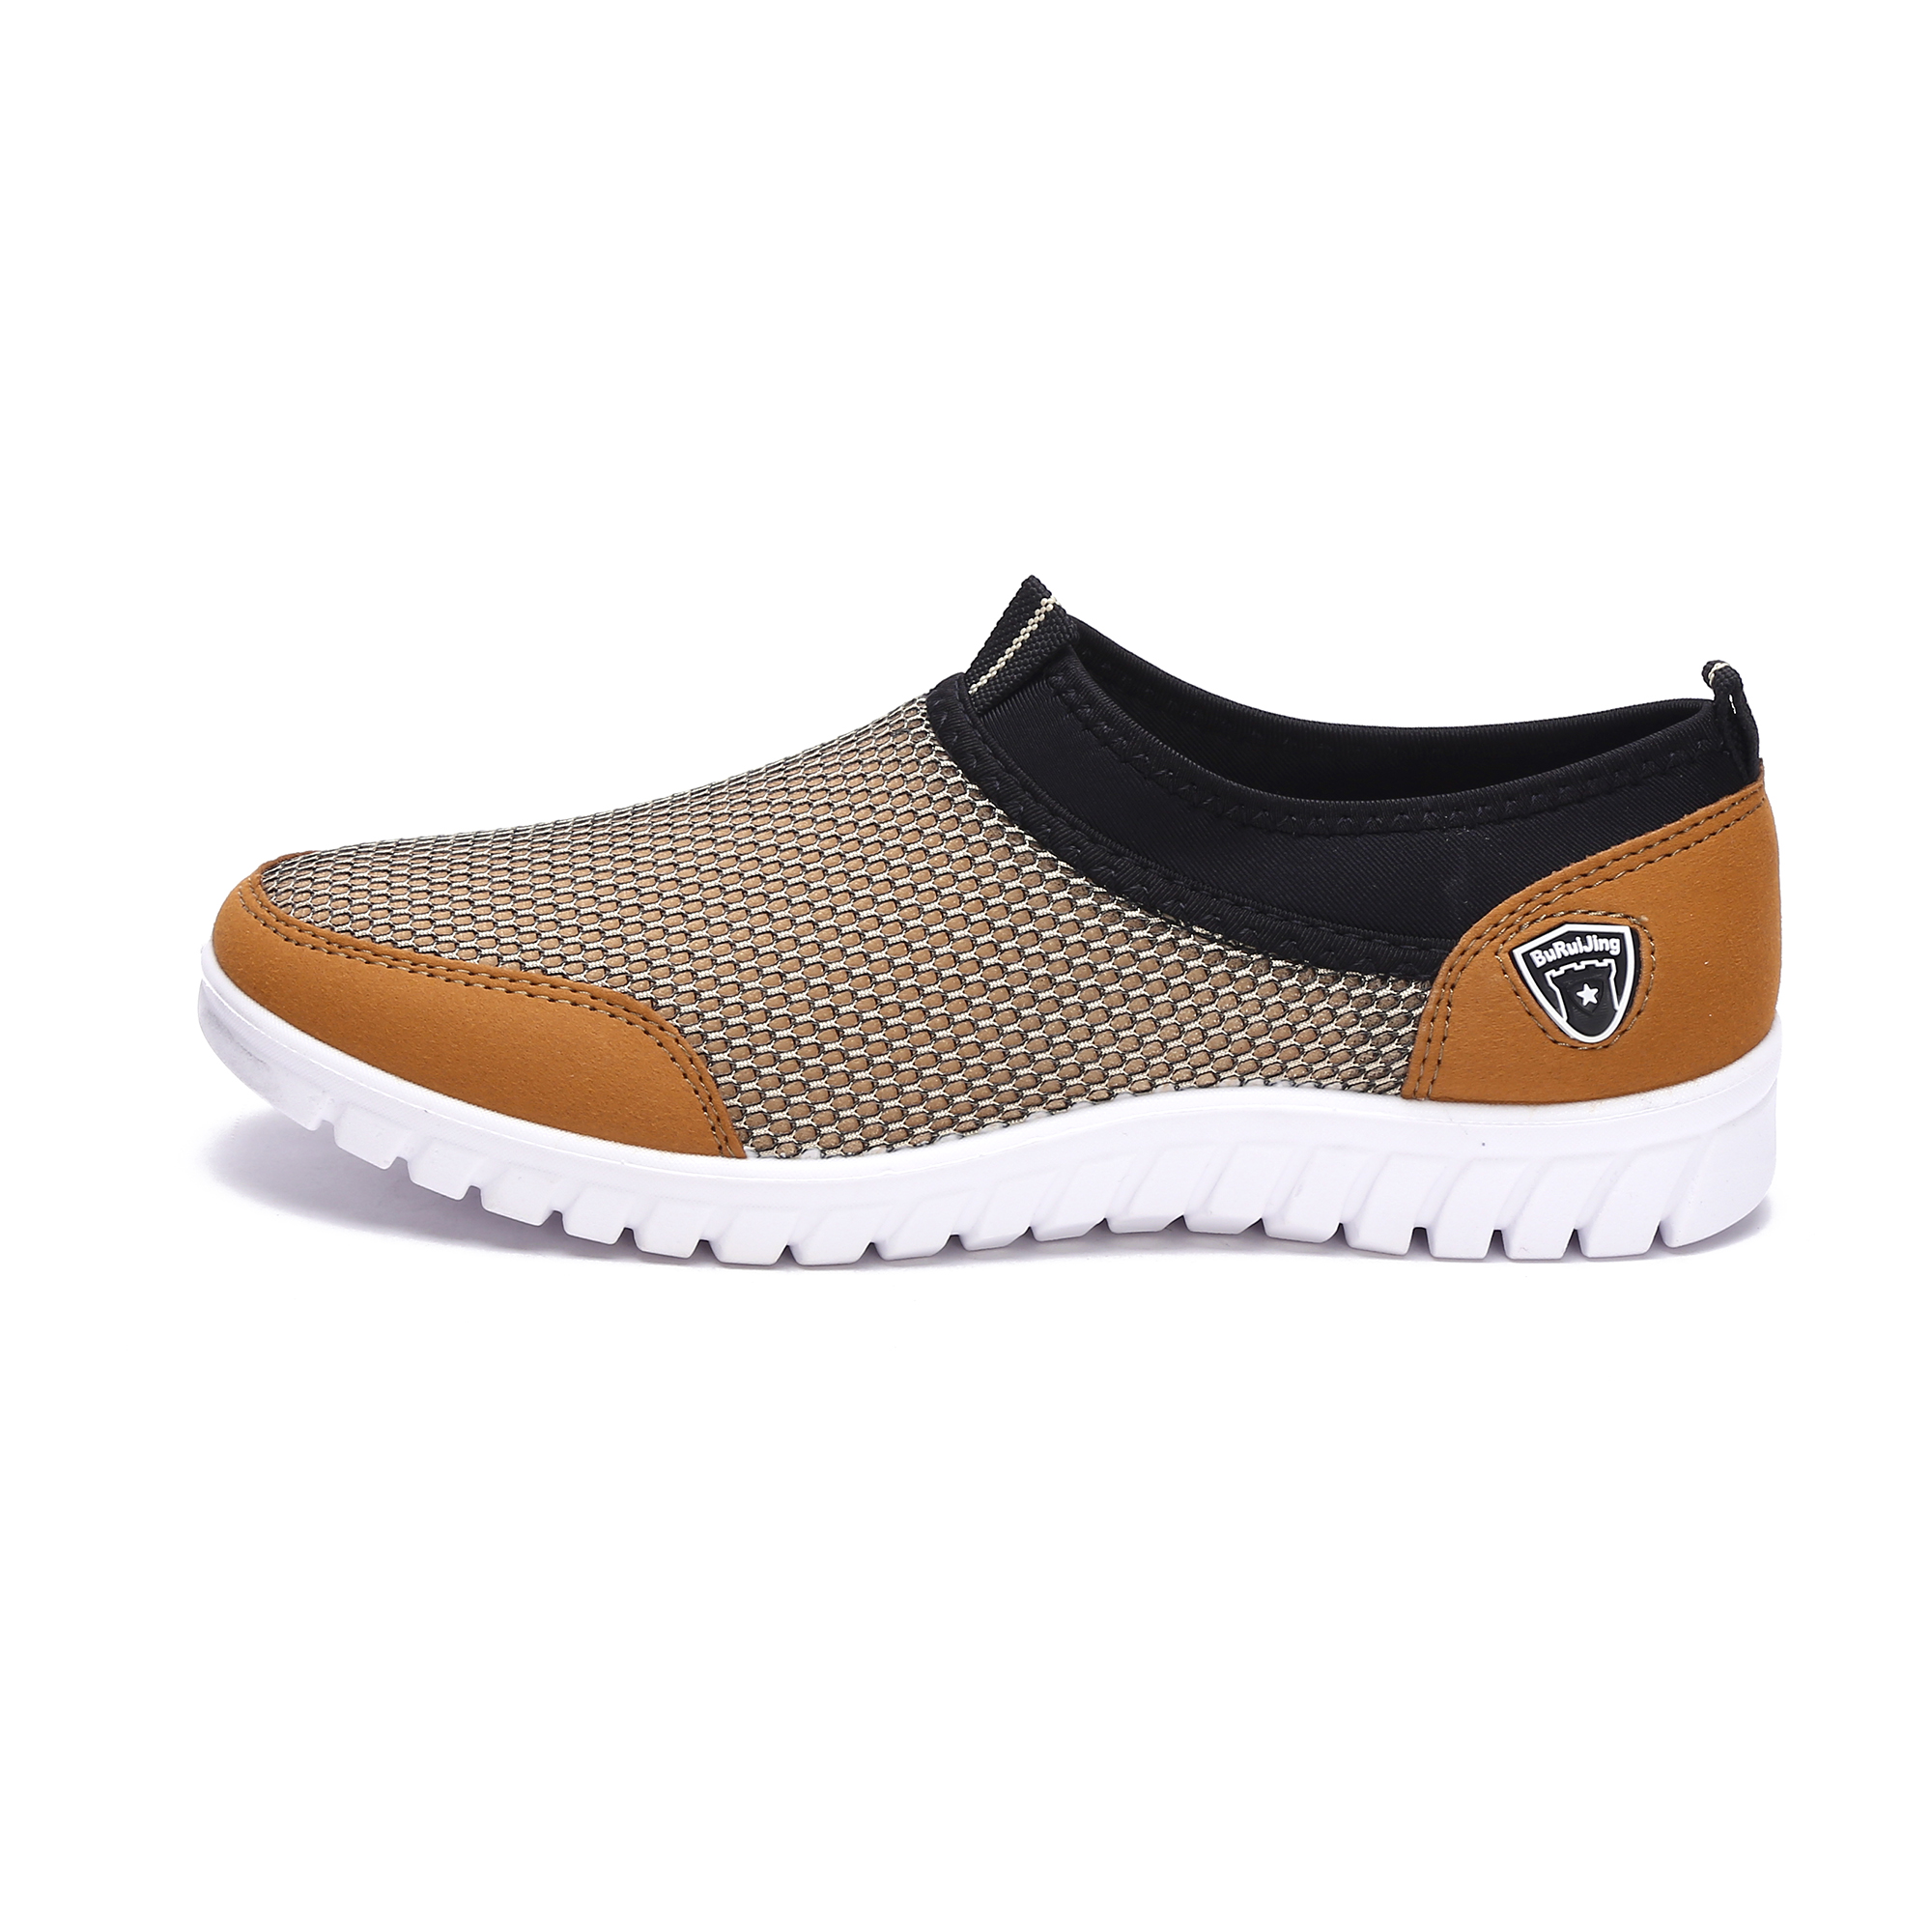 ZUNYU 2019 Summer Mesh Shoe Sneakers For Men Shoes Breathable Men s Casual Shoes Slip On Summer Mesh Shoe Sneakers For Men Shoes Breathable Men's Casual Shoes Slip-On Male Shoes Loafers Casual Walking 38-48